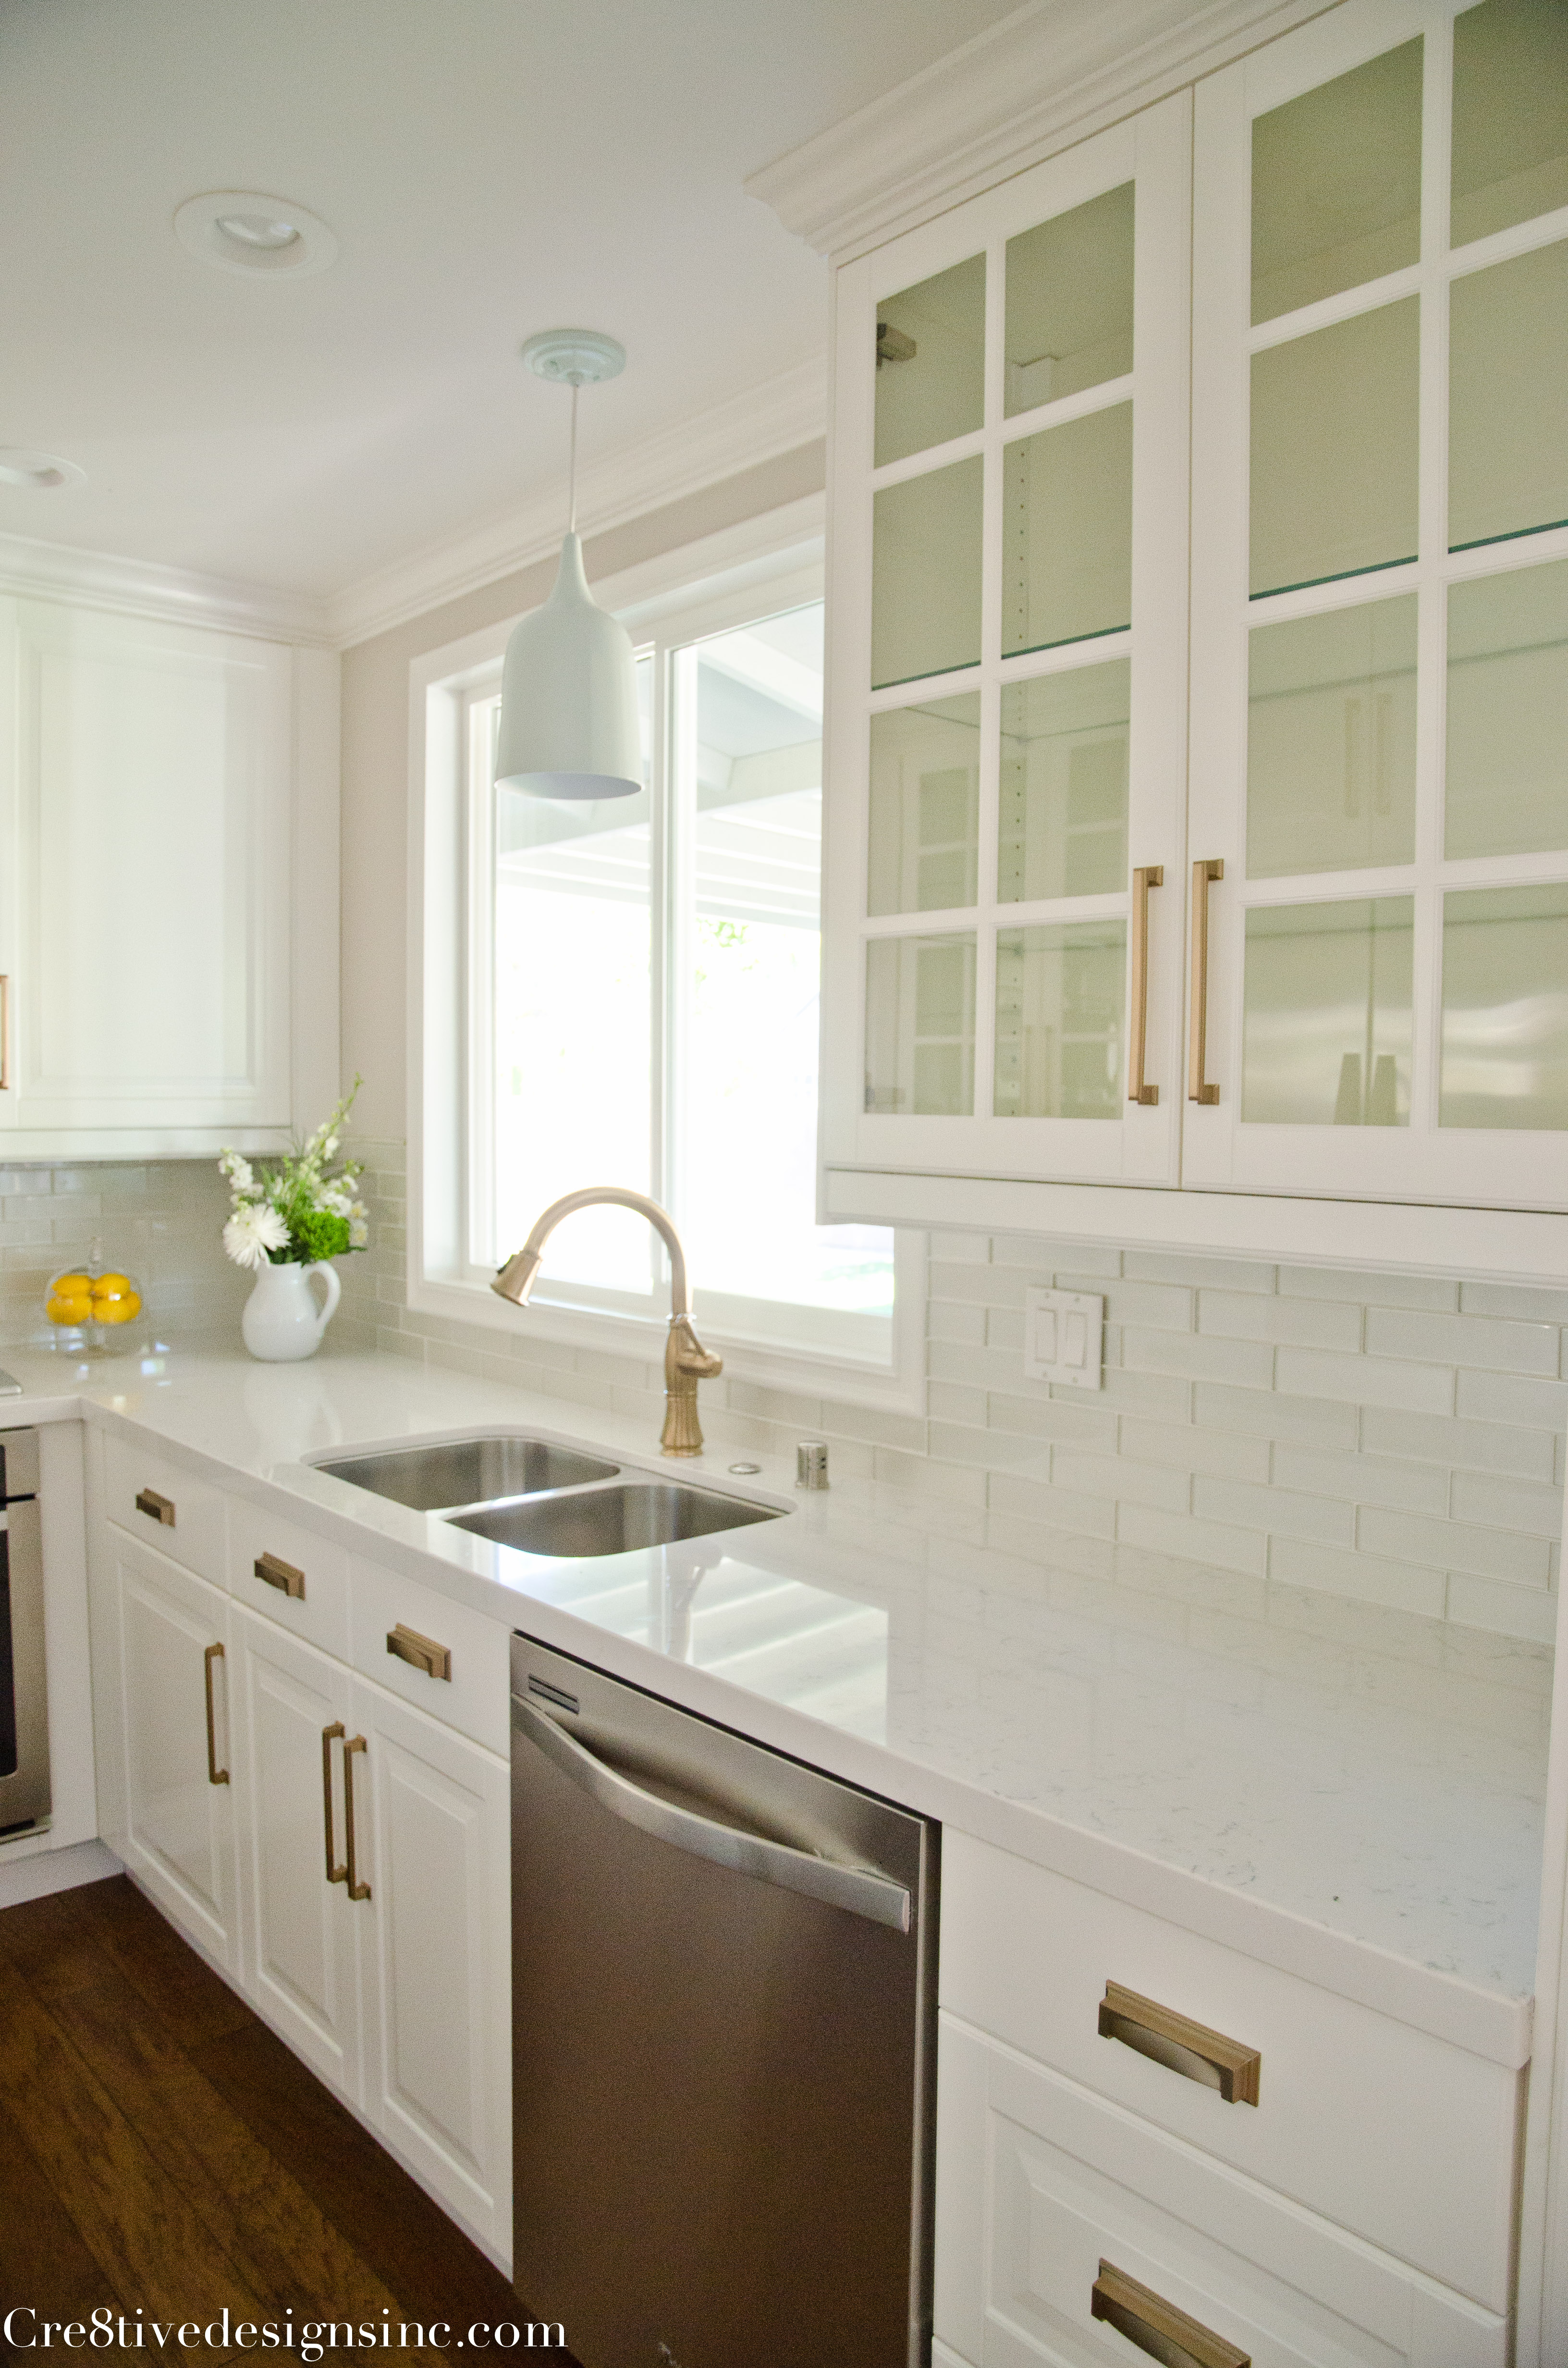 ikea kitchen remodel kids in the book completed cre8tive designs inc using cabinets